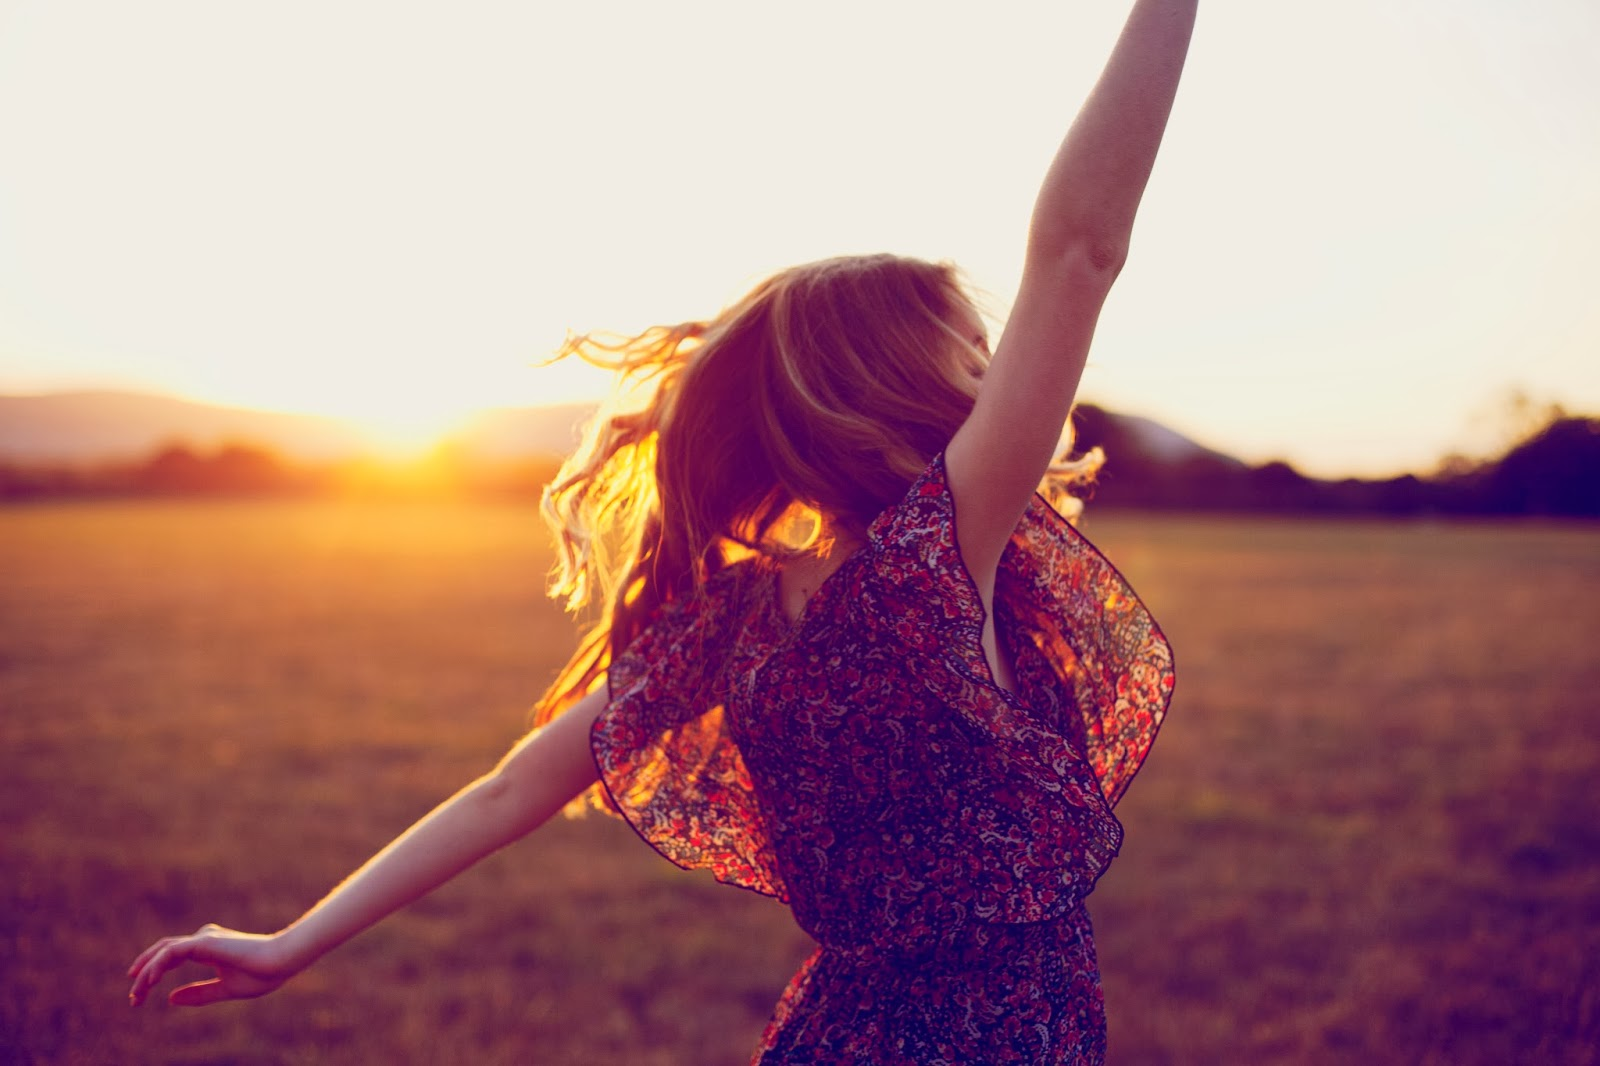 http://obviousmag.org/antonia_no_diva/2016/03/03/20150501-dancing-woman-sunset-sunshine-happiness-prezent-moment-now.jpg